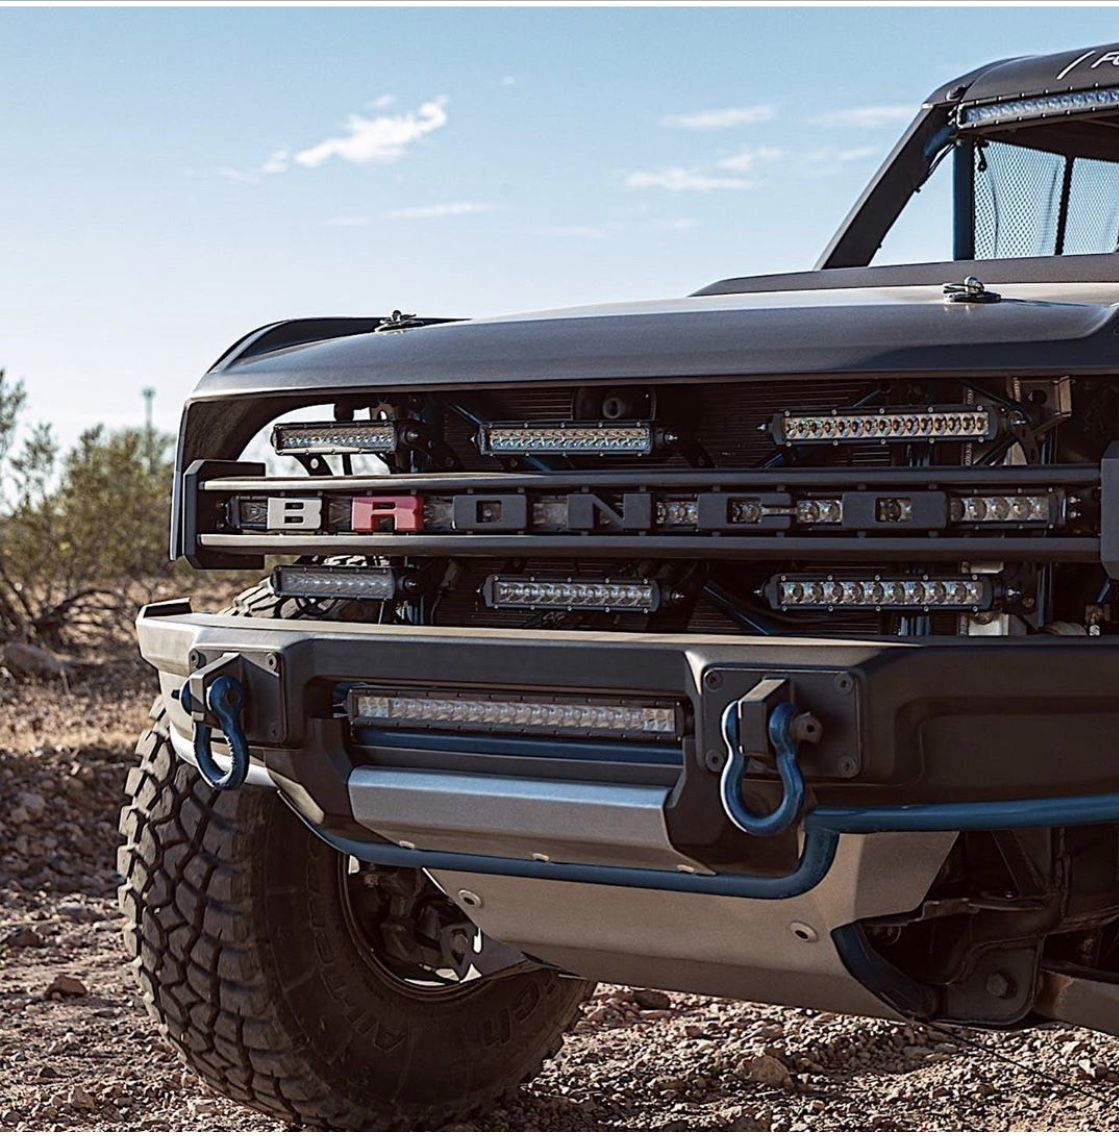 Pin by Kenyon Edwards on Rapped Up! Ford bronco, Bronco